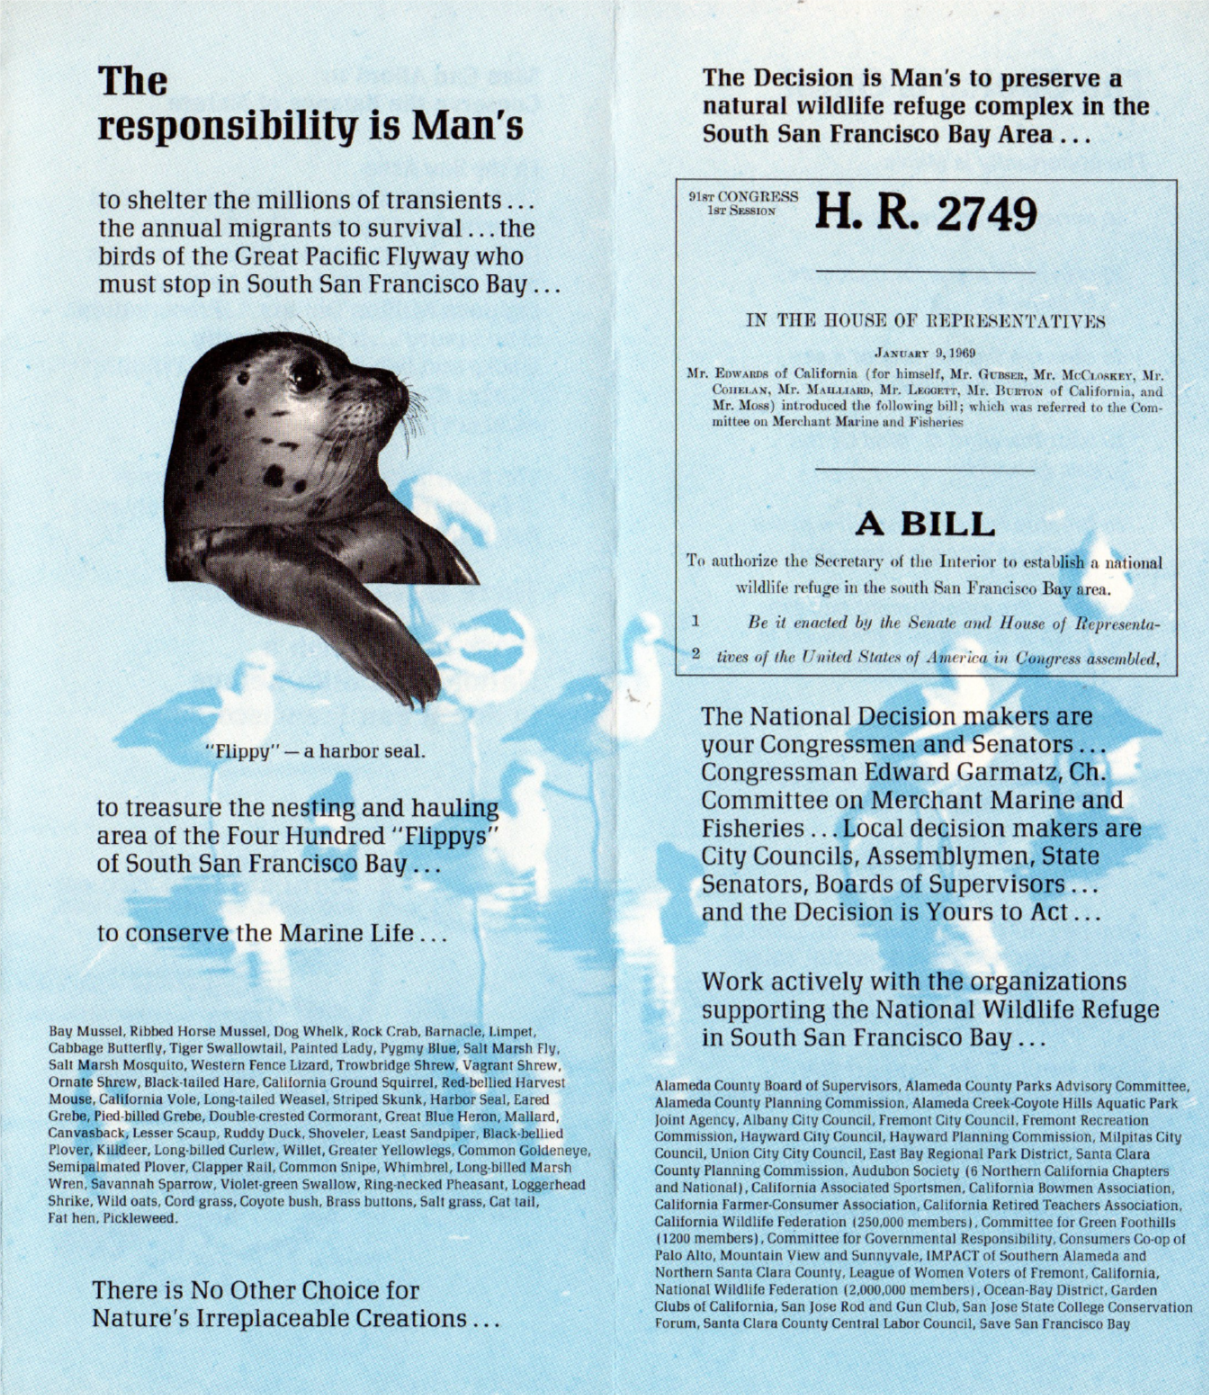 Excerpt from Historic Flyer